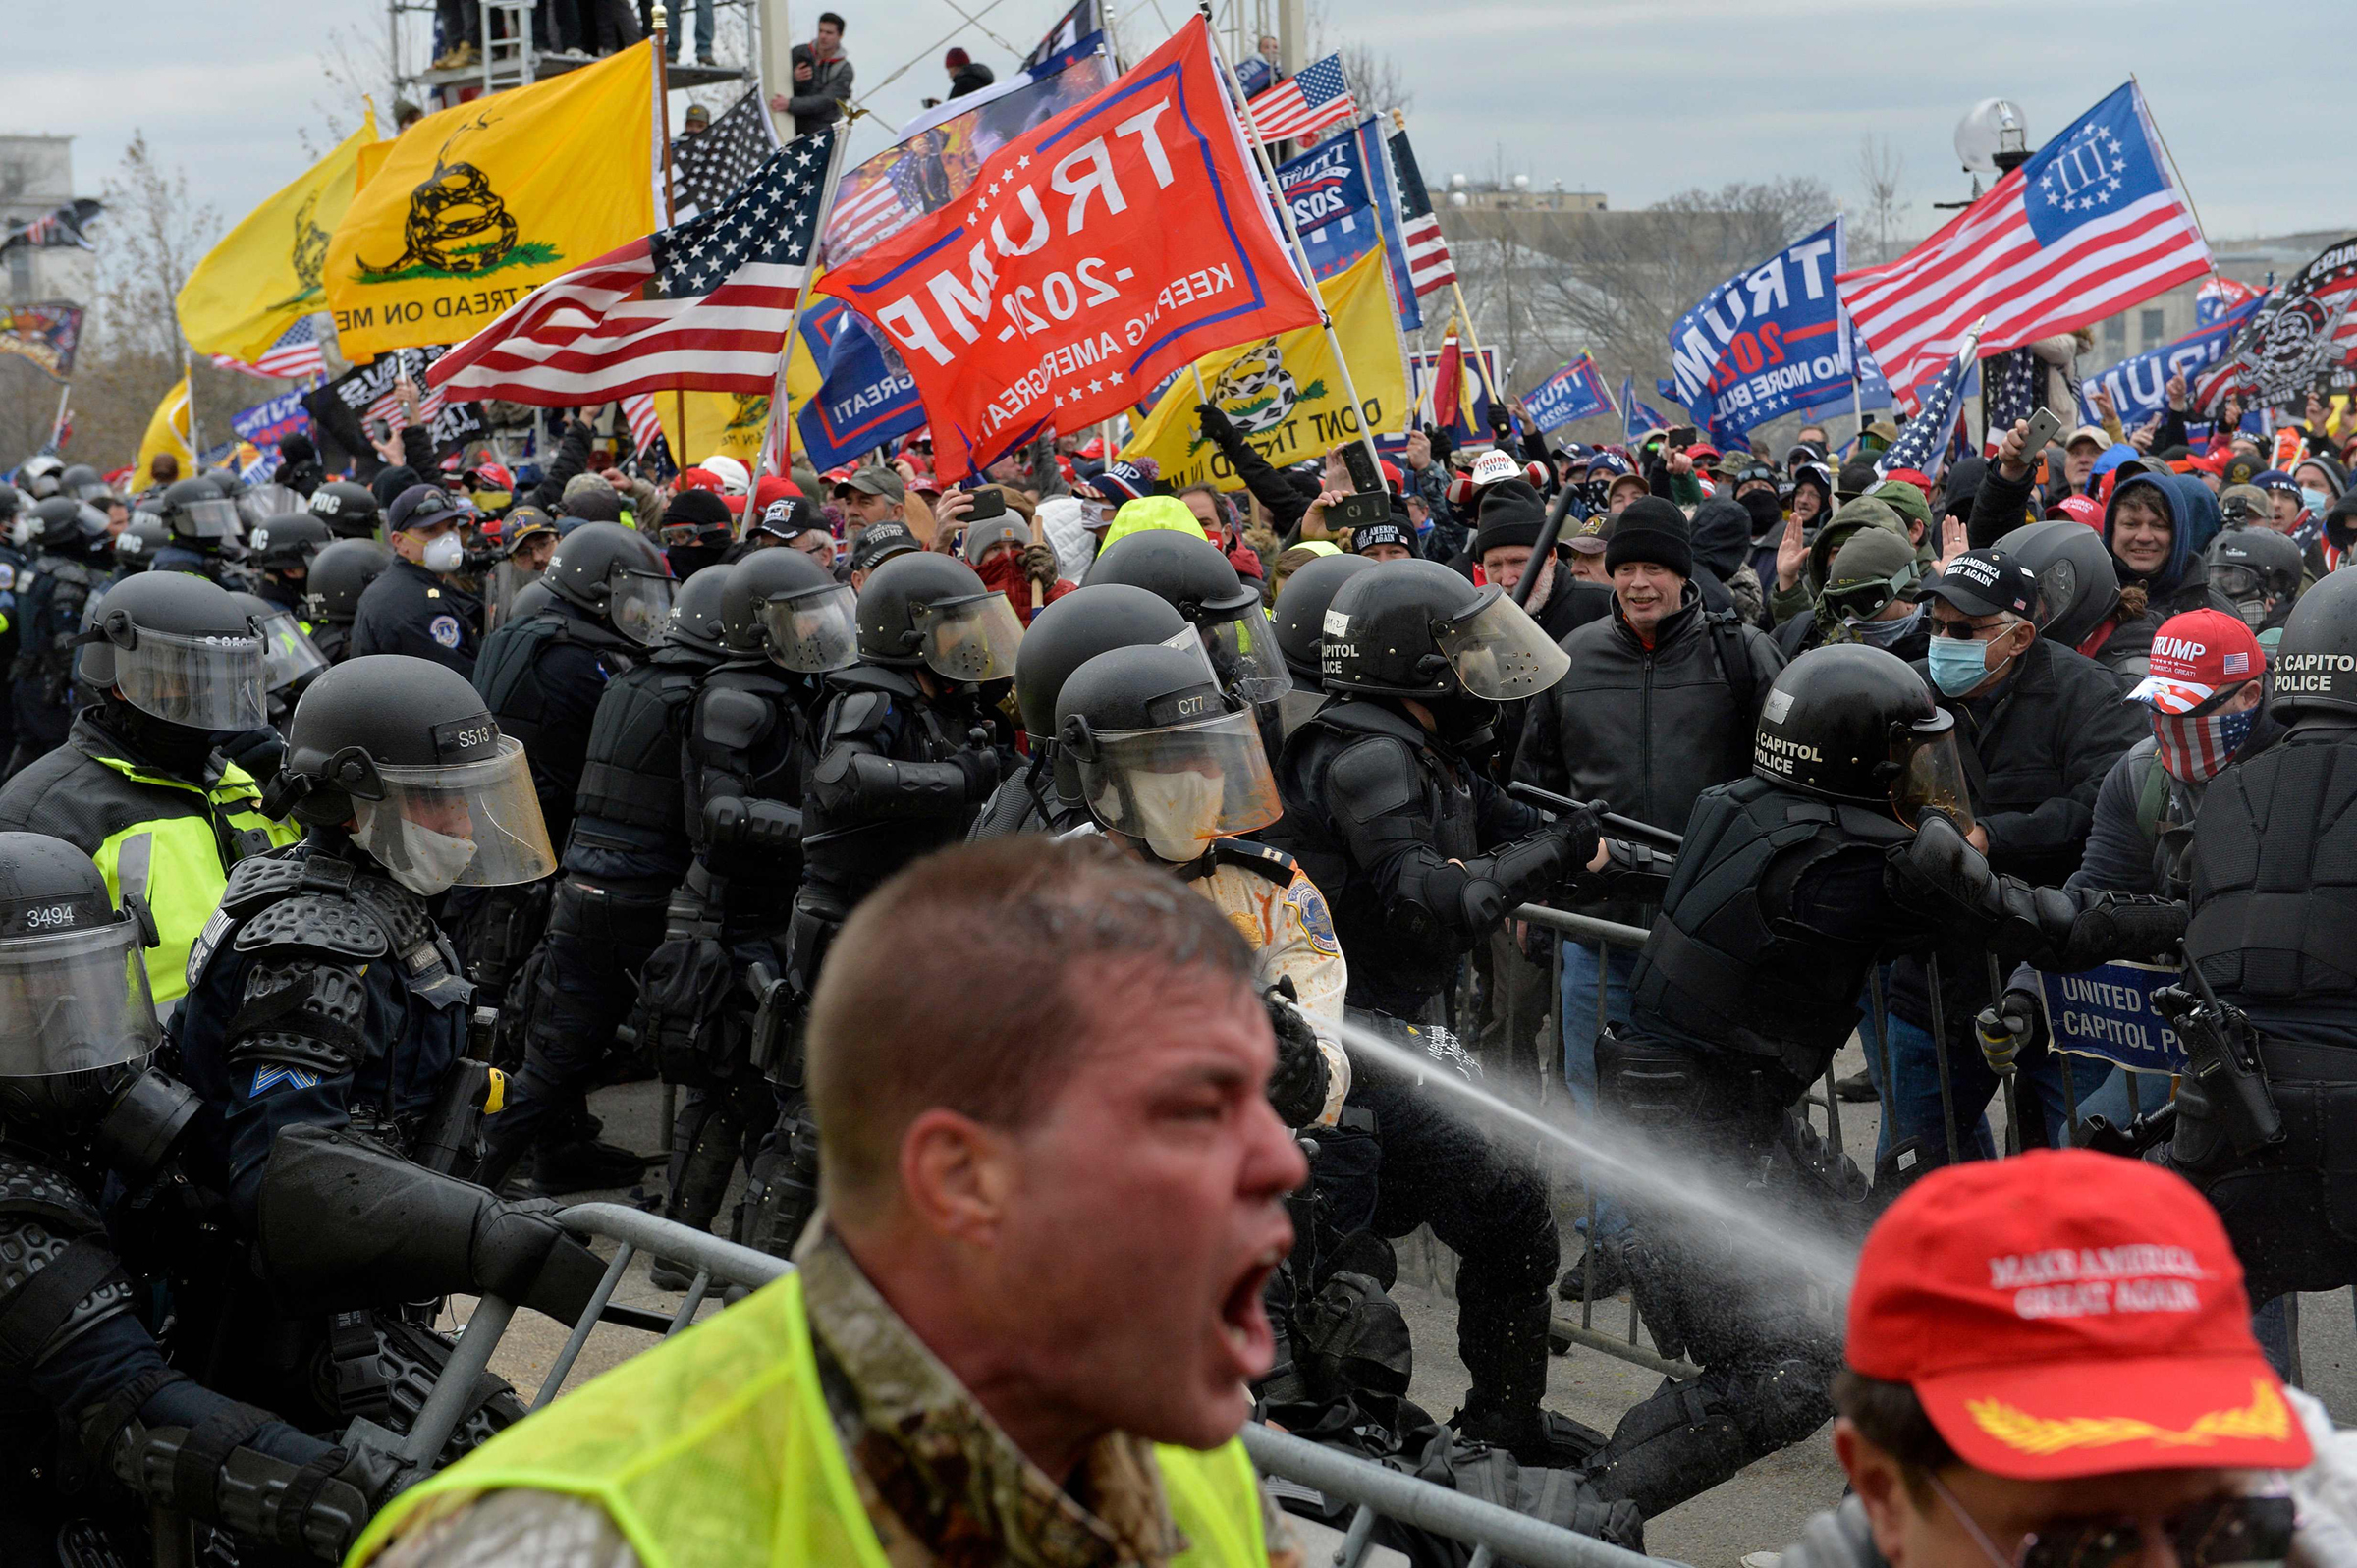 Trump supporters clash with police and security forces as people try to storm the Capitol building in Washington D.C. on Jan. 6, 2021.